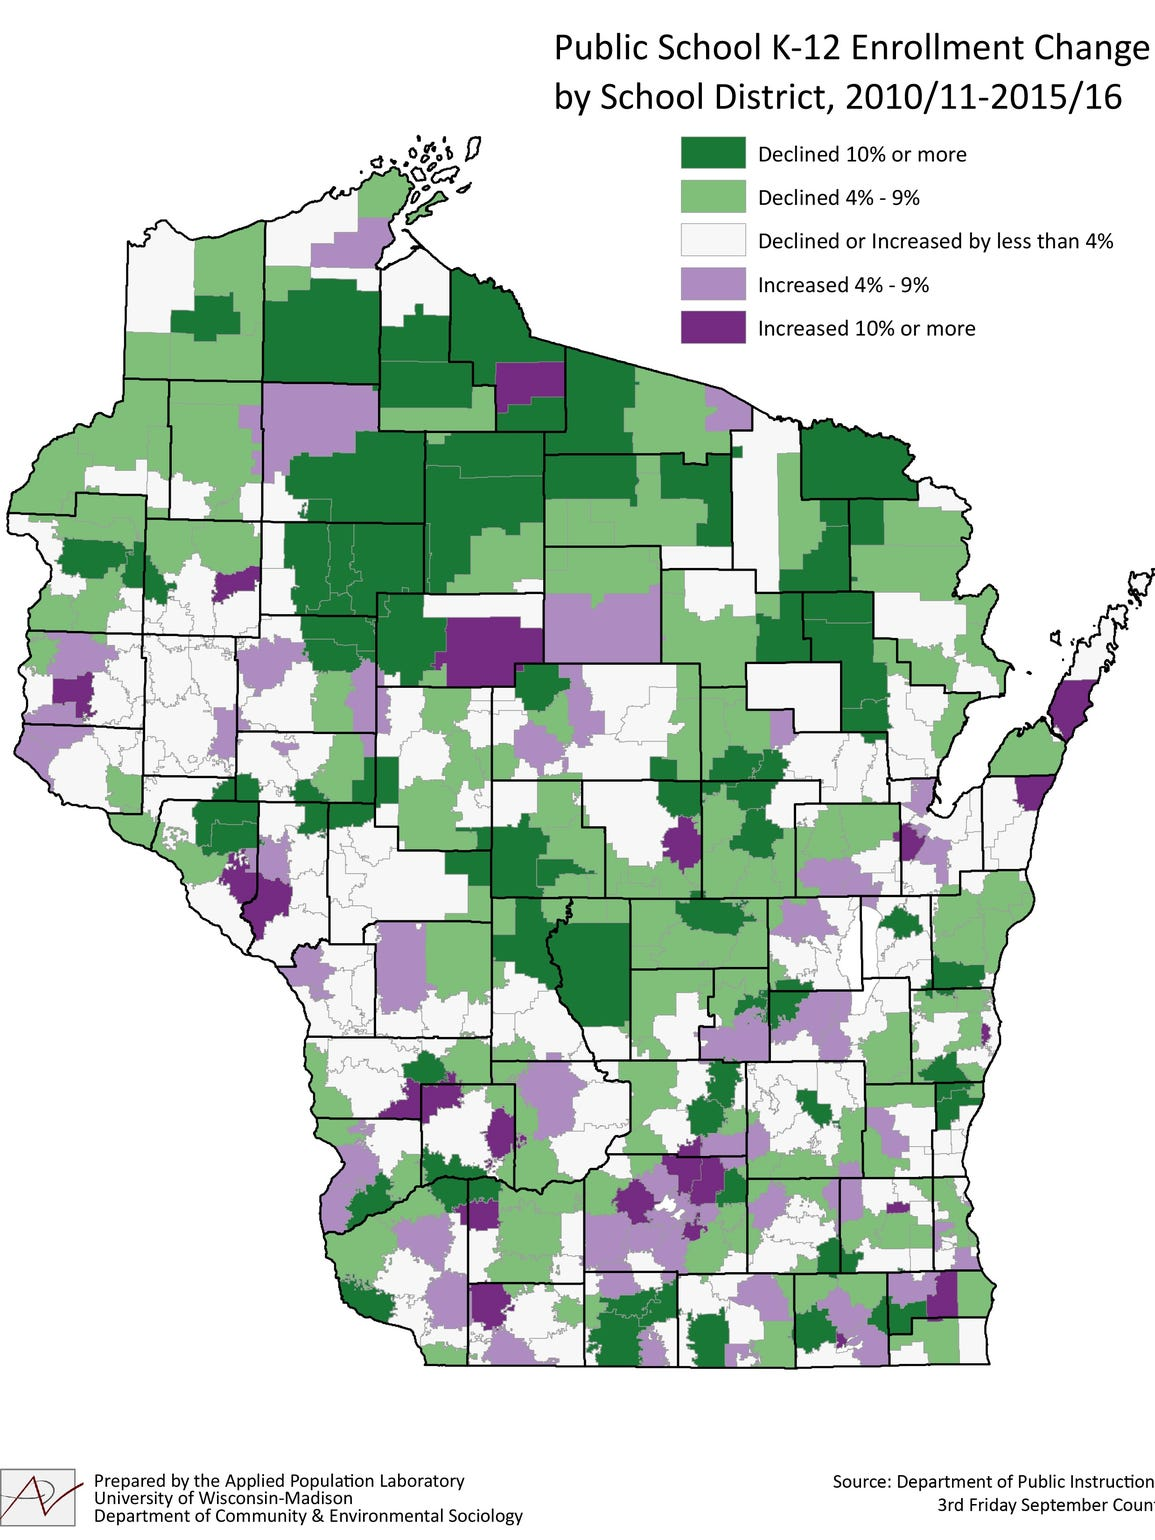 This map from the Applied Population Laboratory shows